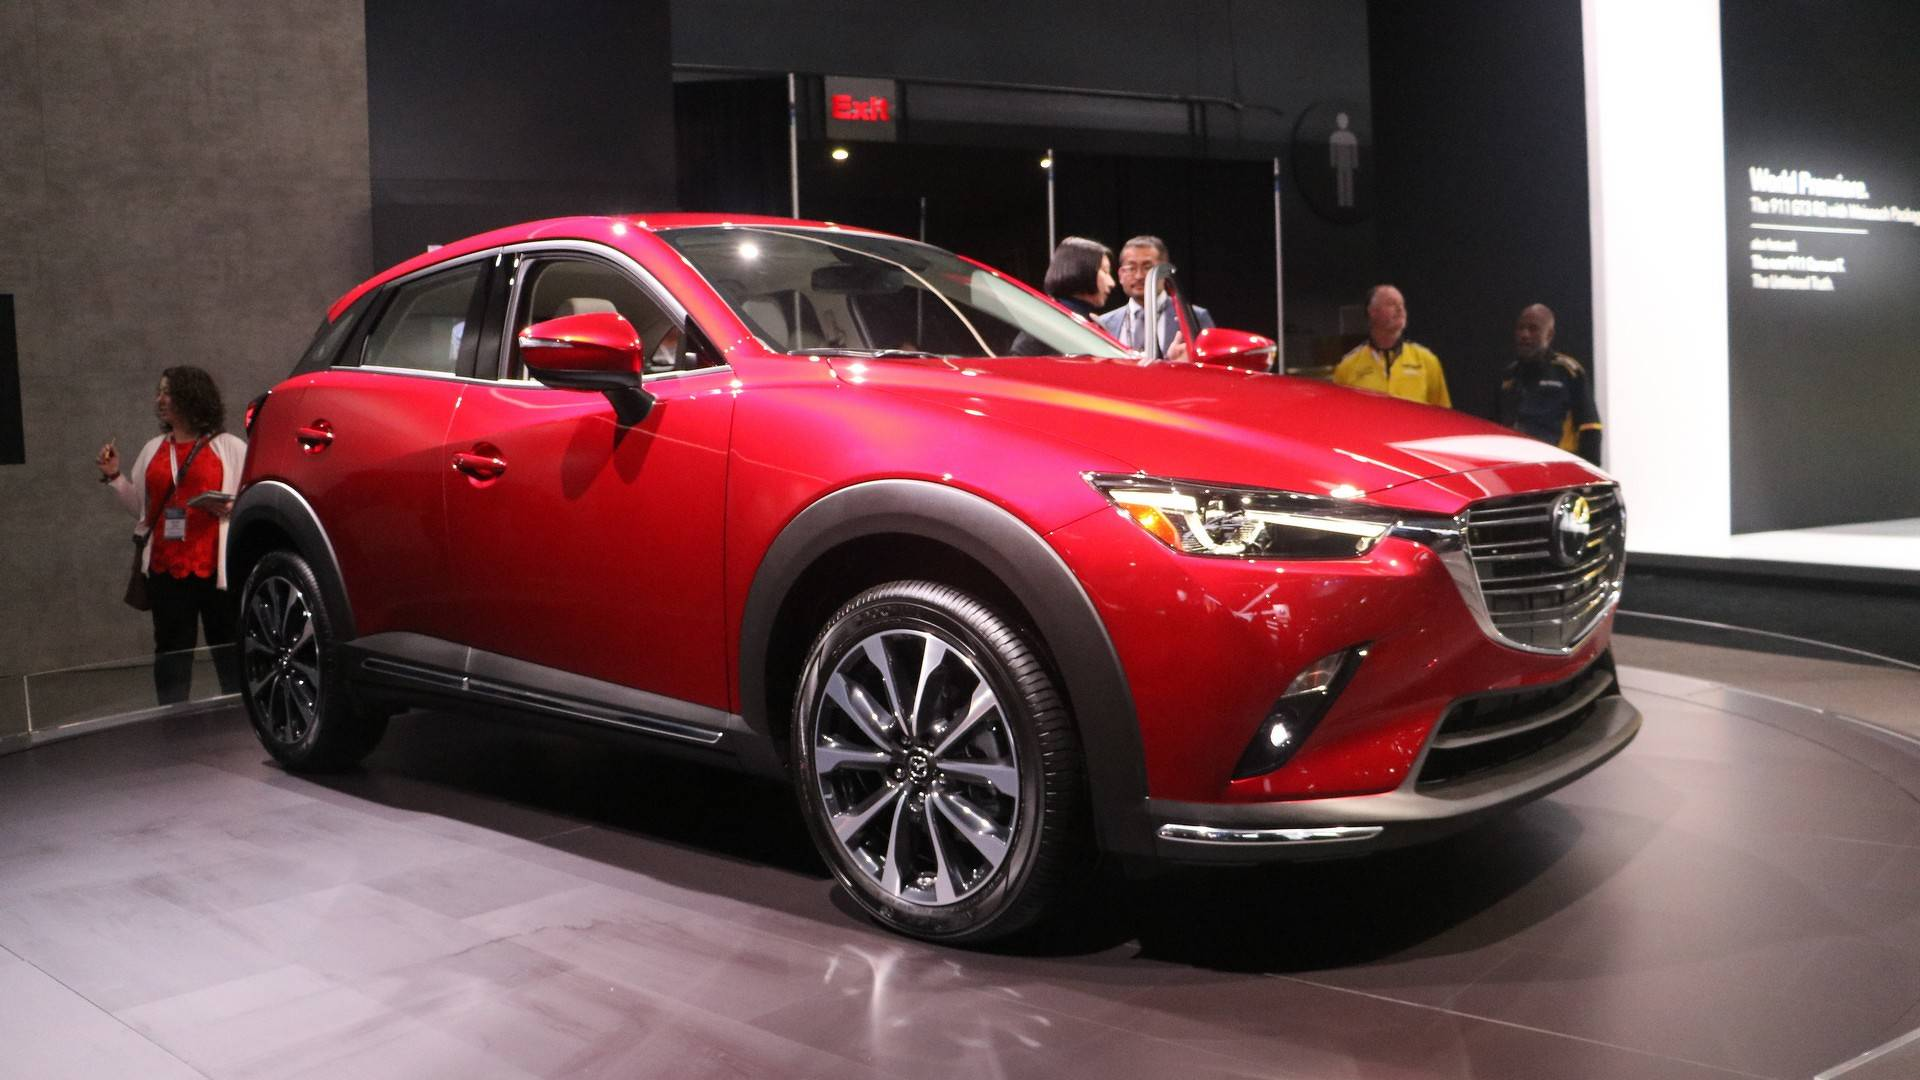 2019 Mazda Cx 3 Debuts With 148 Hp And Improved Interior